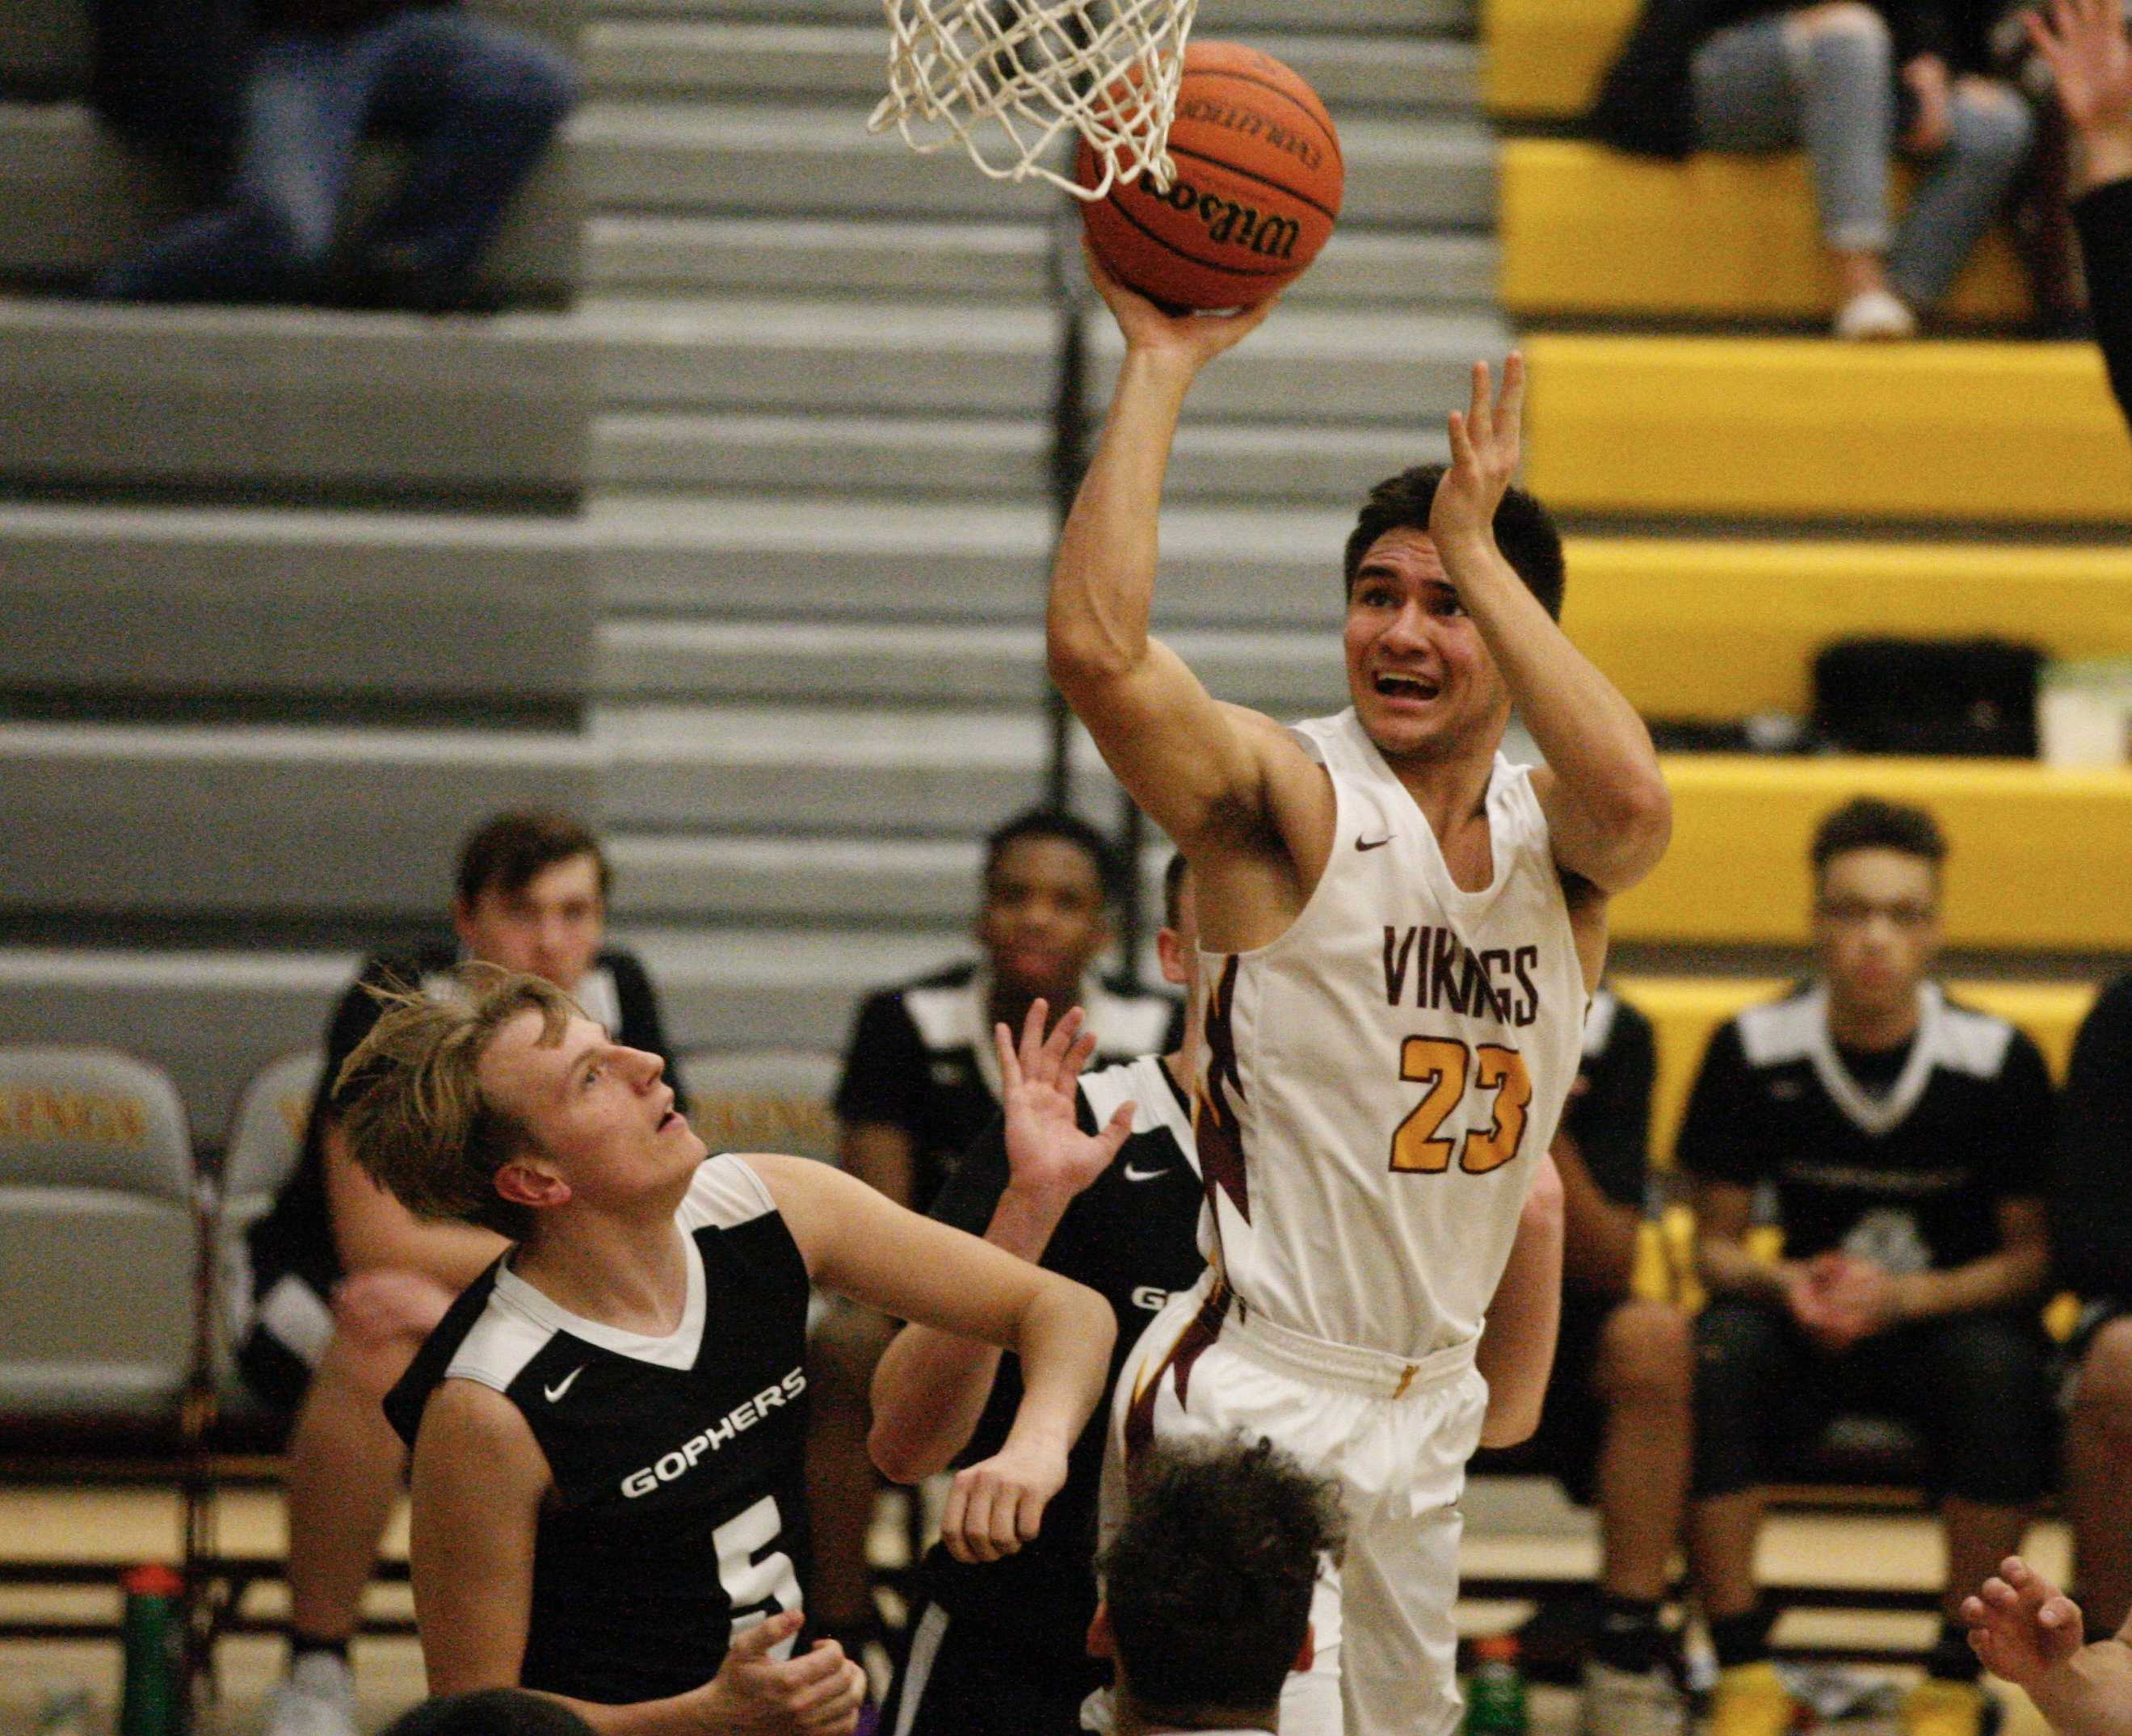 Forest Grove's Guy Littlefield drops a short shot in the key on his way to 20 points Friday. (Photo by Norm Maves Jr.)